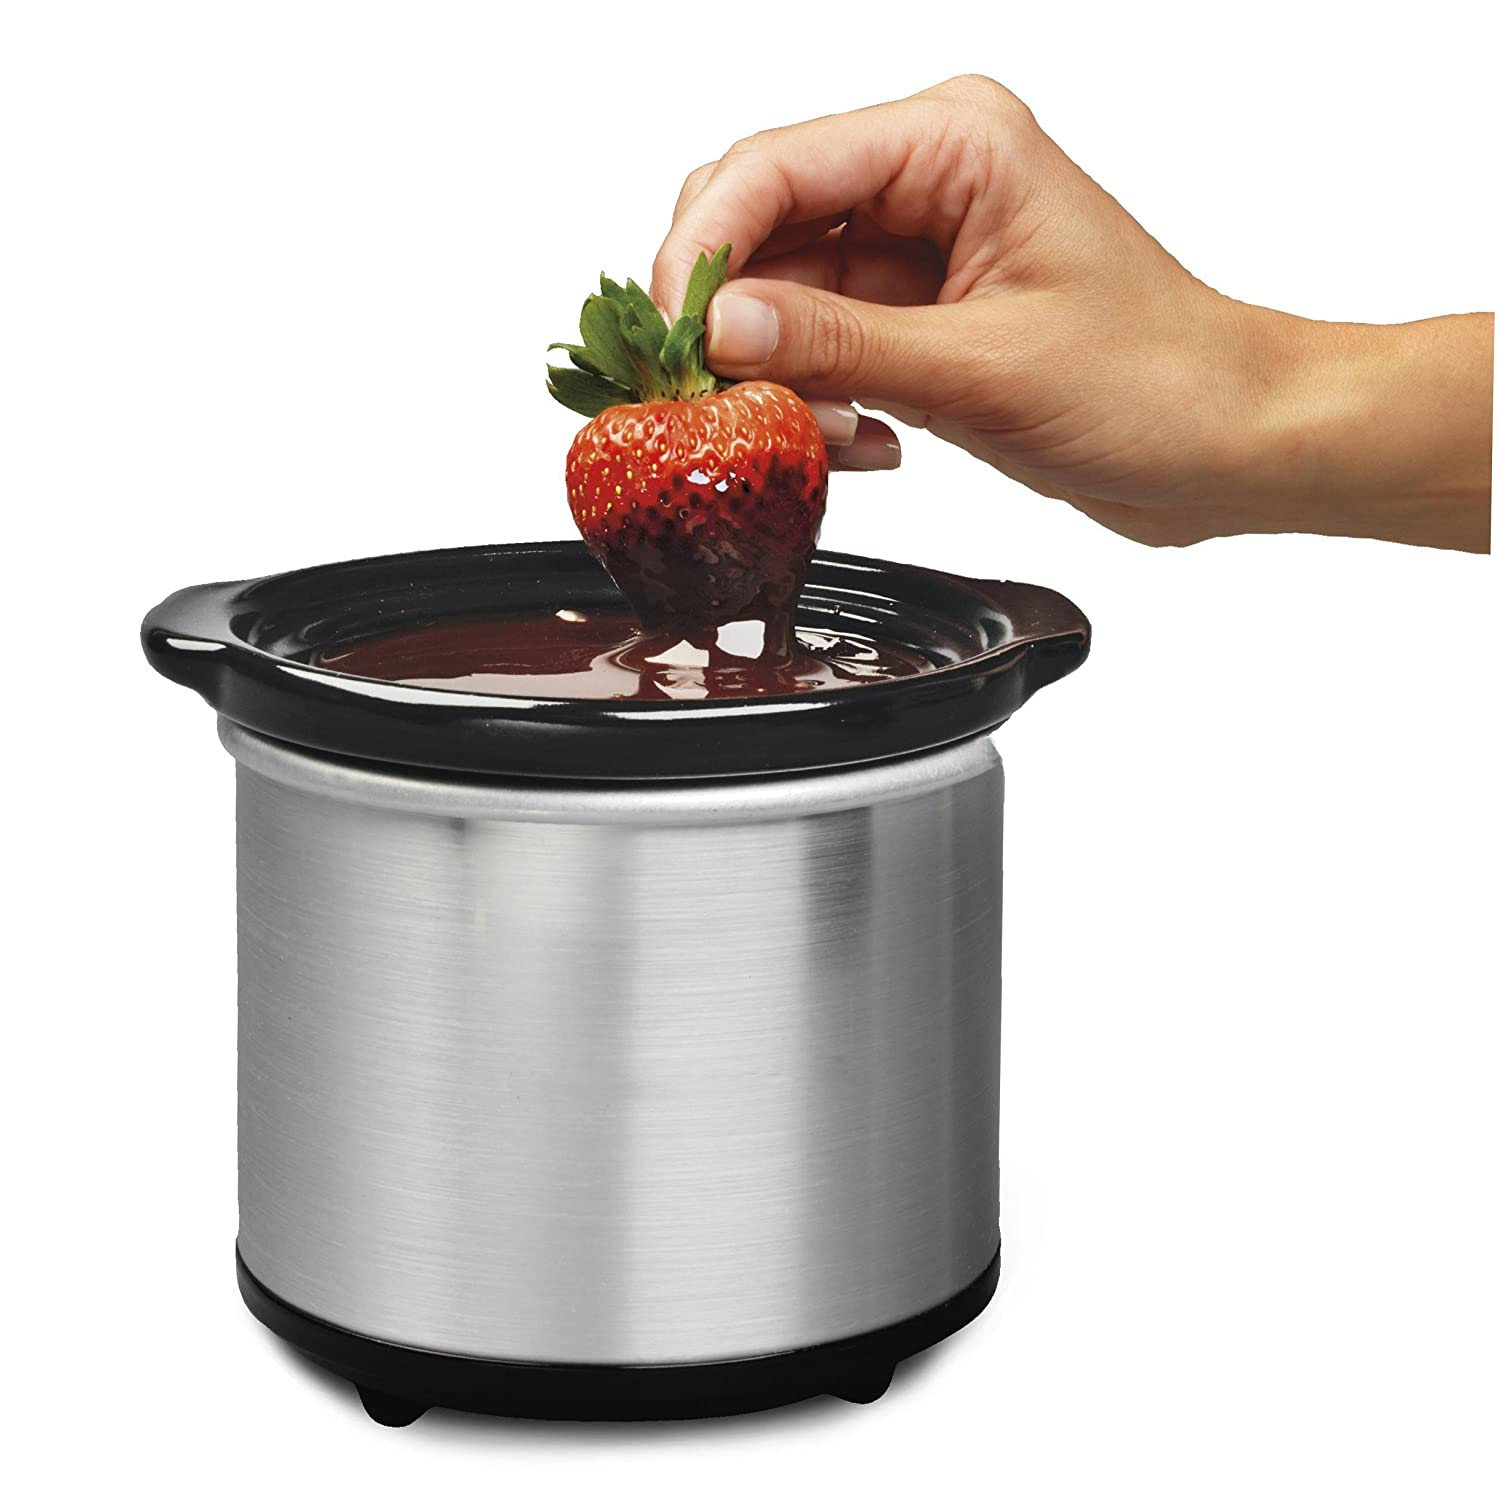 Amazon.com: Toastmaster 20 OUNCE MINI CROCK .65-Quart Slow Cooker ...